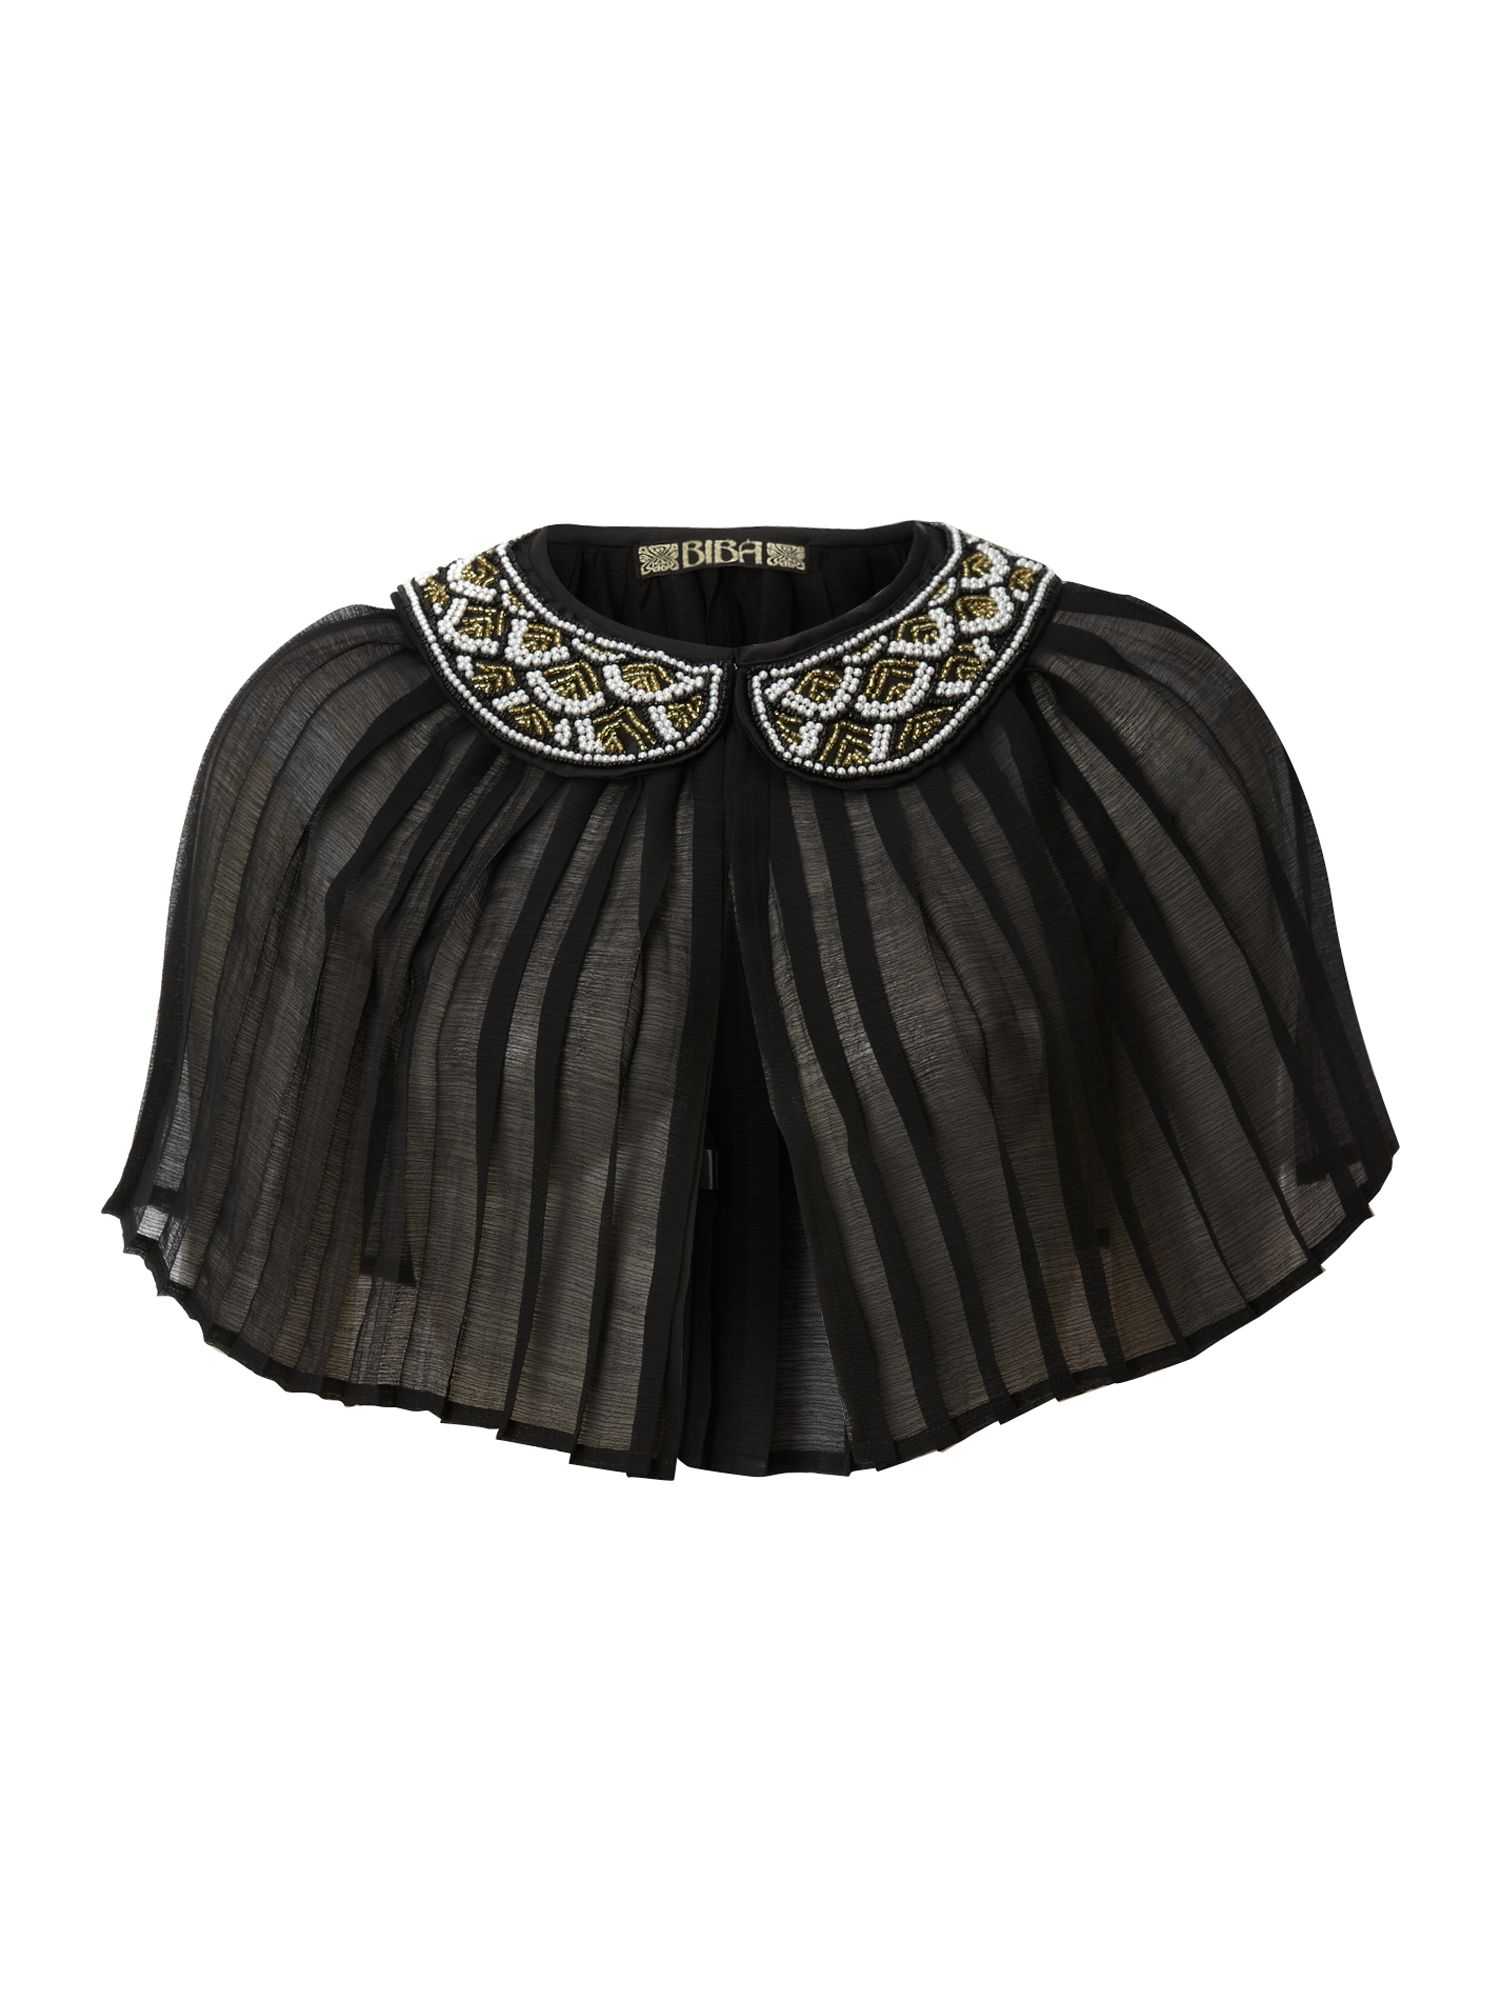 Pleated cape with art deco style beaded collar